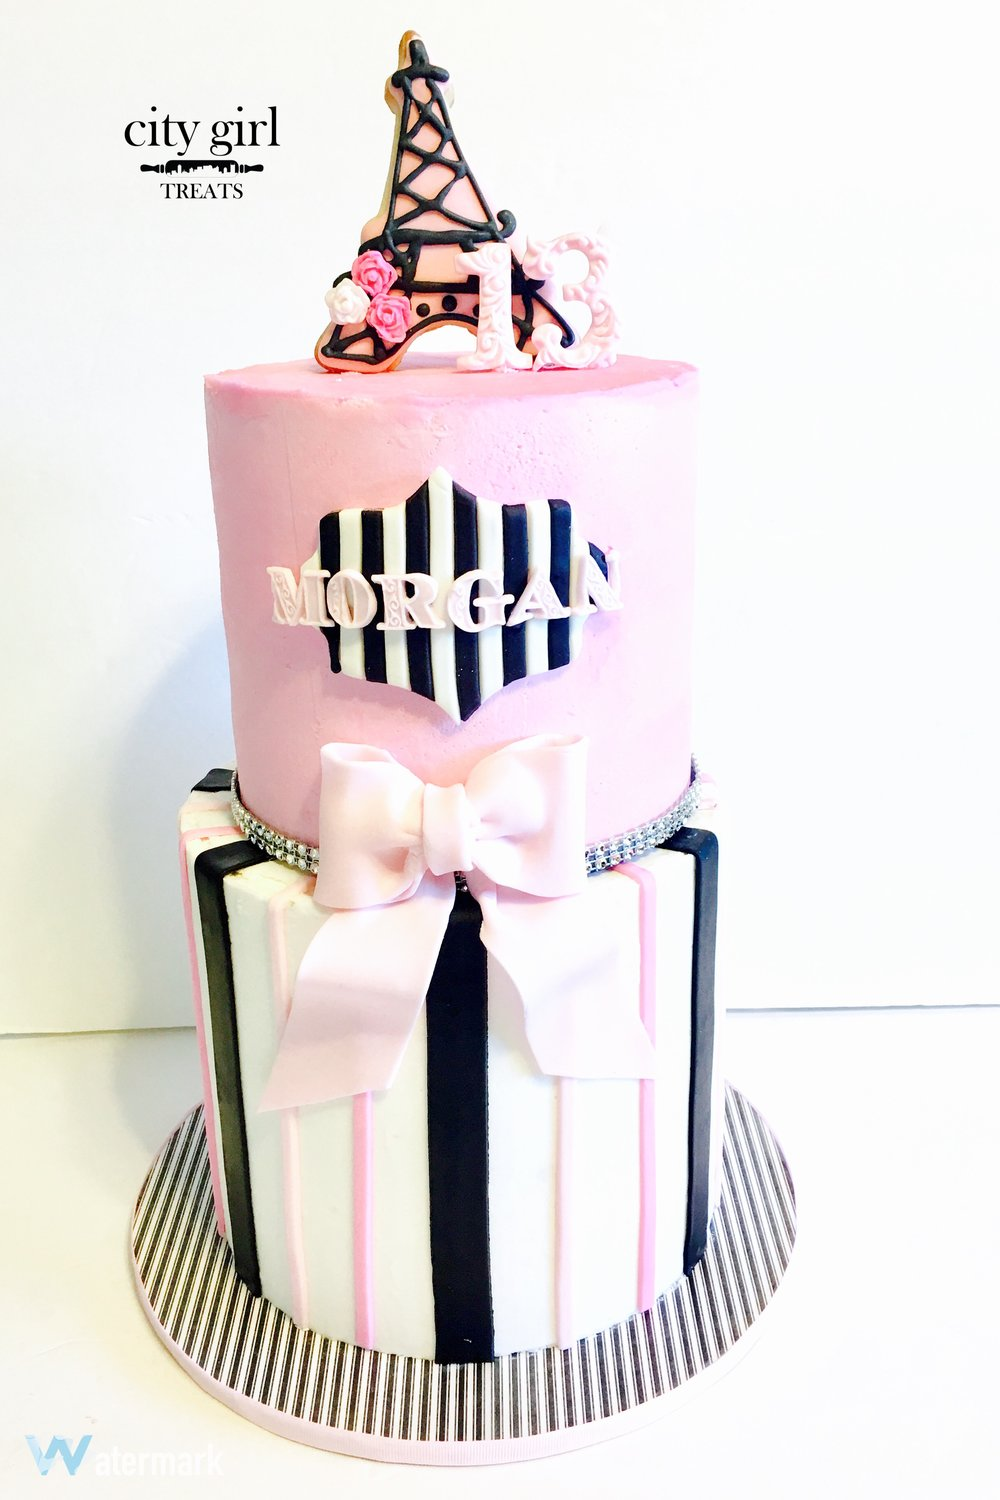 Paris themed birthday cake by Nashville TN bakery and desserts City Girl Treats